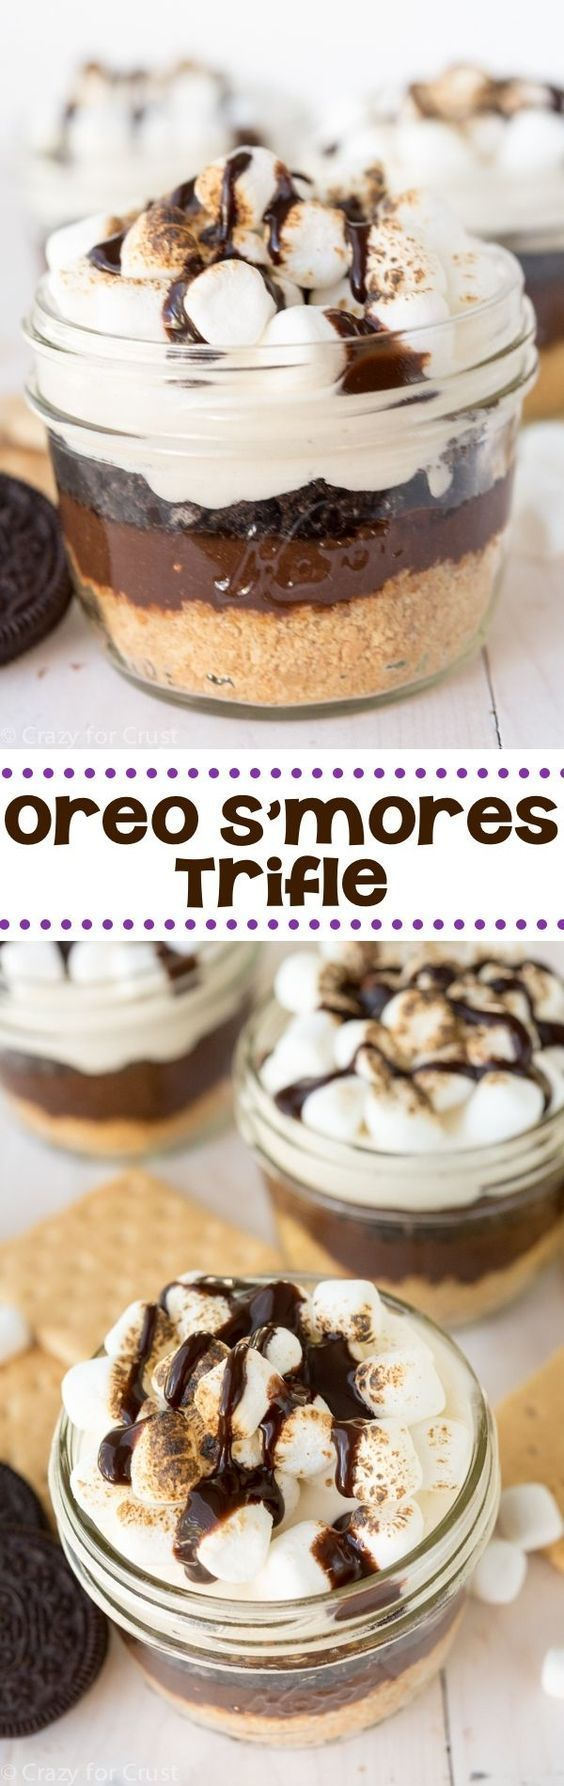 No Bake Oreo S'more Trifle - an easy no bake dessert recipe that combines Oreos and S'mores. It's a S'mOreo Trifle!